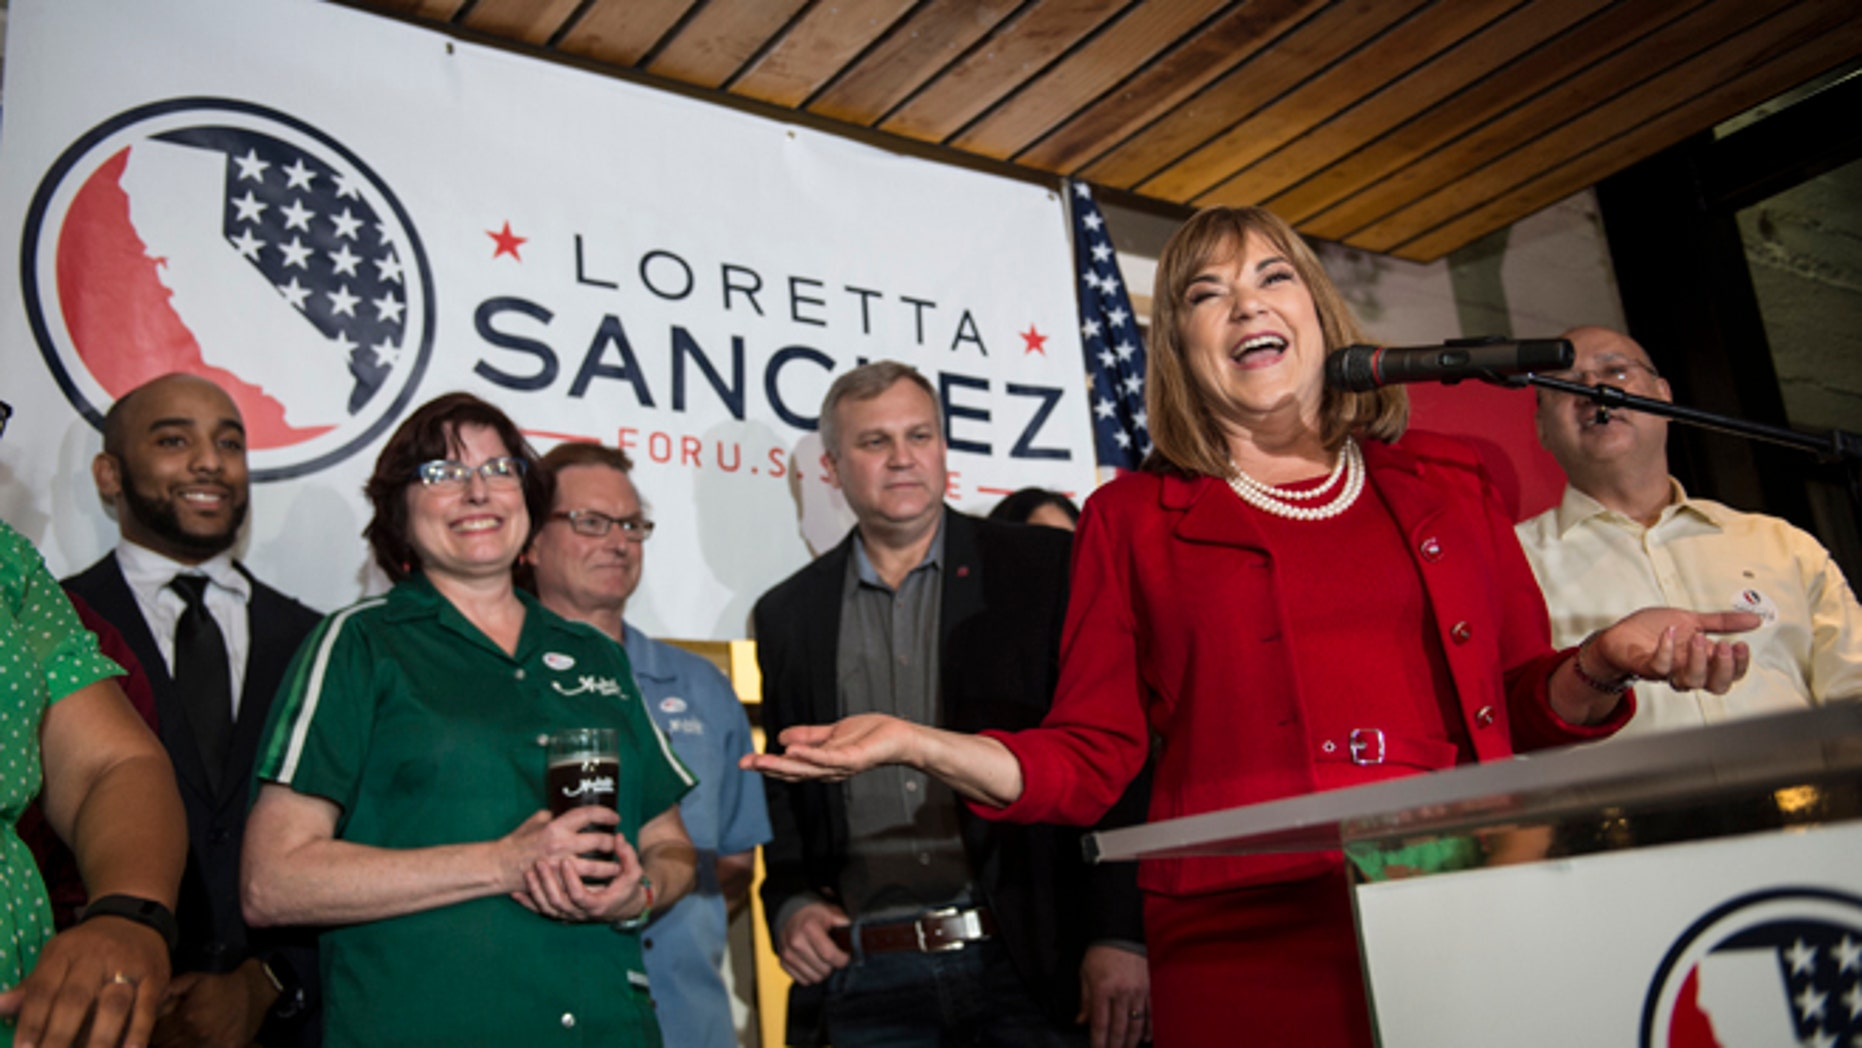 U.S. Congresswoman Loretta Sanchez at Anaheim Brewery in Anaheim, Calif., on Tuesday, June 7, 2016.